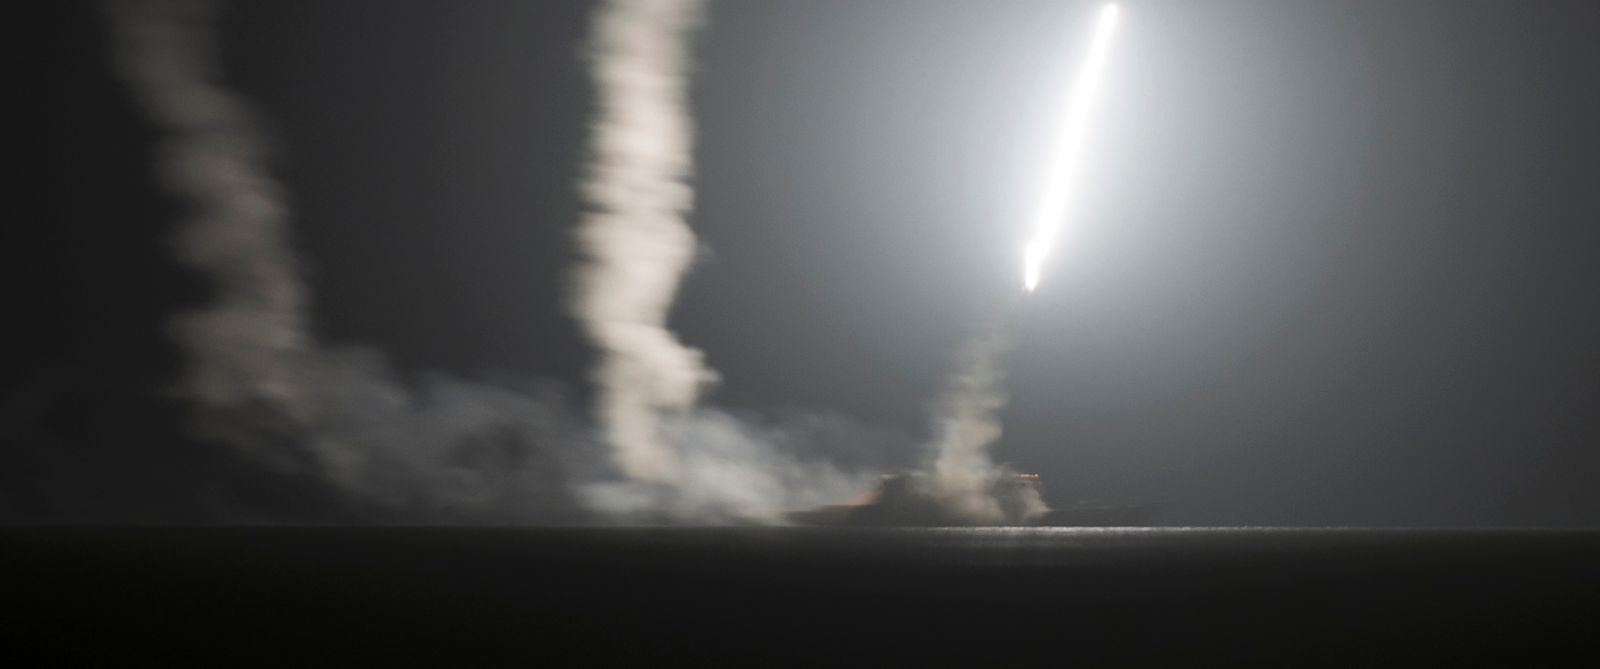 PHOTO: The guided-missile cruiser USS Philippine Sea launches a Tomahawk cruise missile at Islamic State group positions in Syria as seen from the aircraft carrier USS George H.W. Bush on the Arabian Gulf, Sept. 23, 2014.